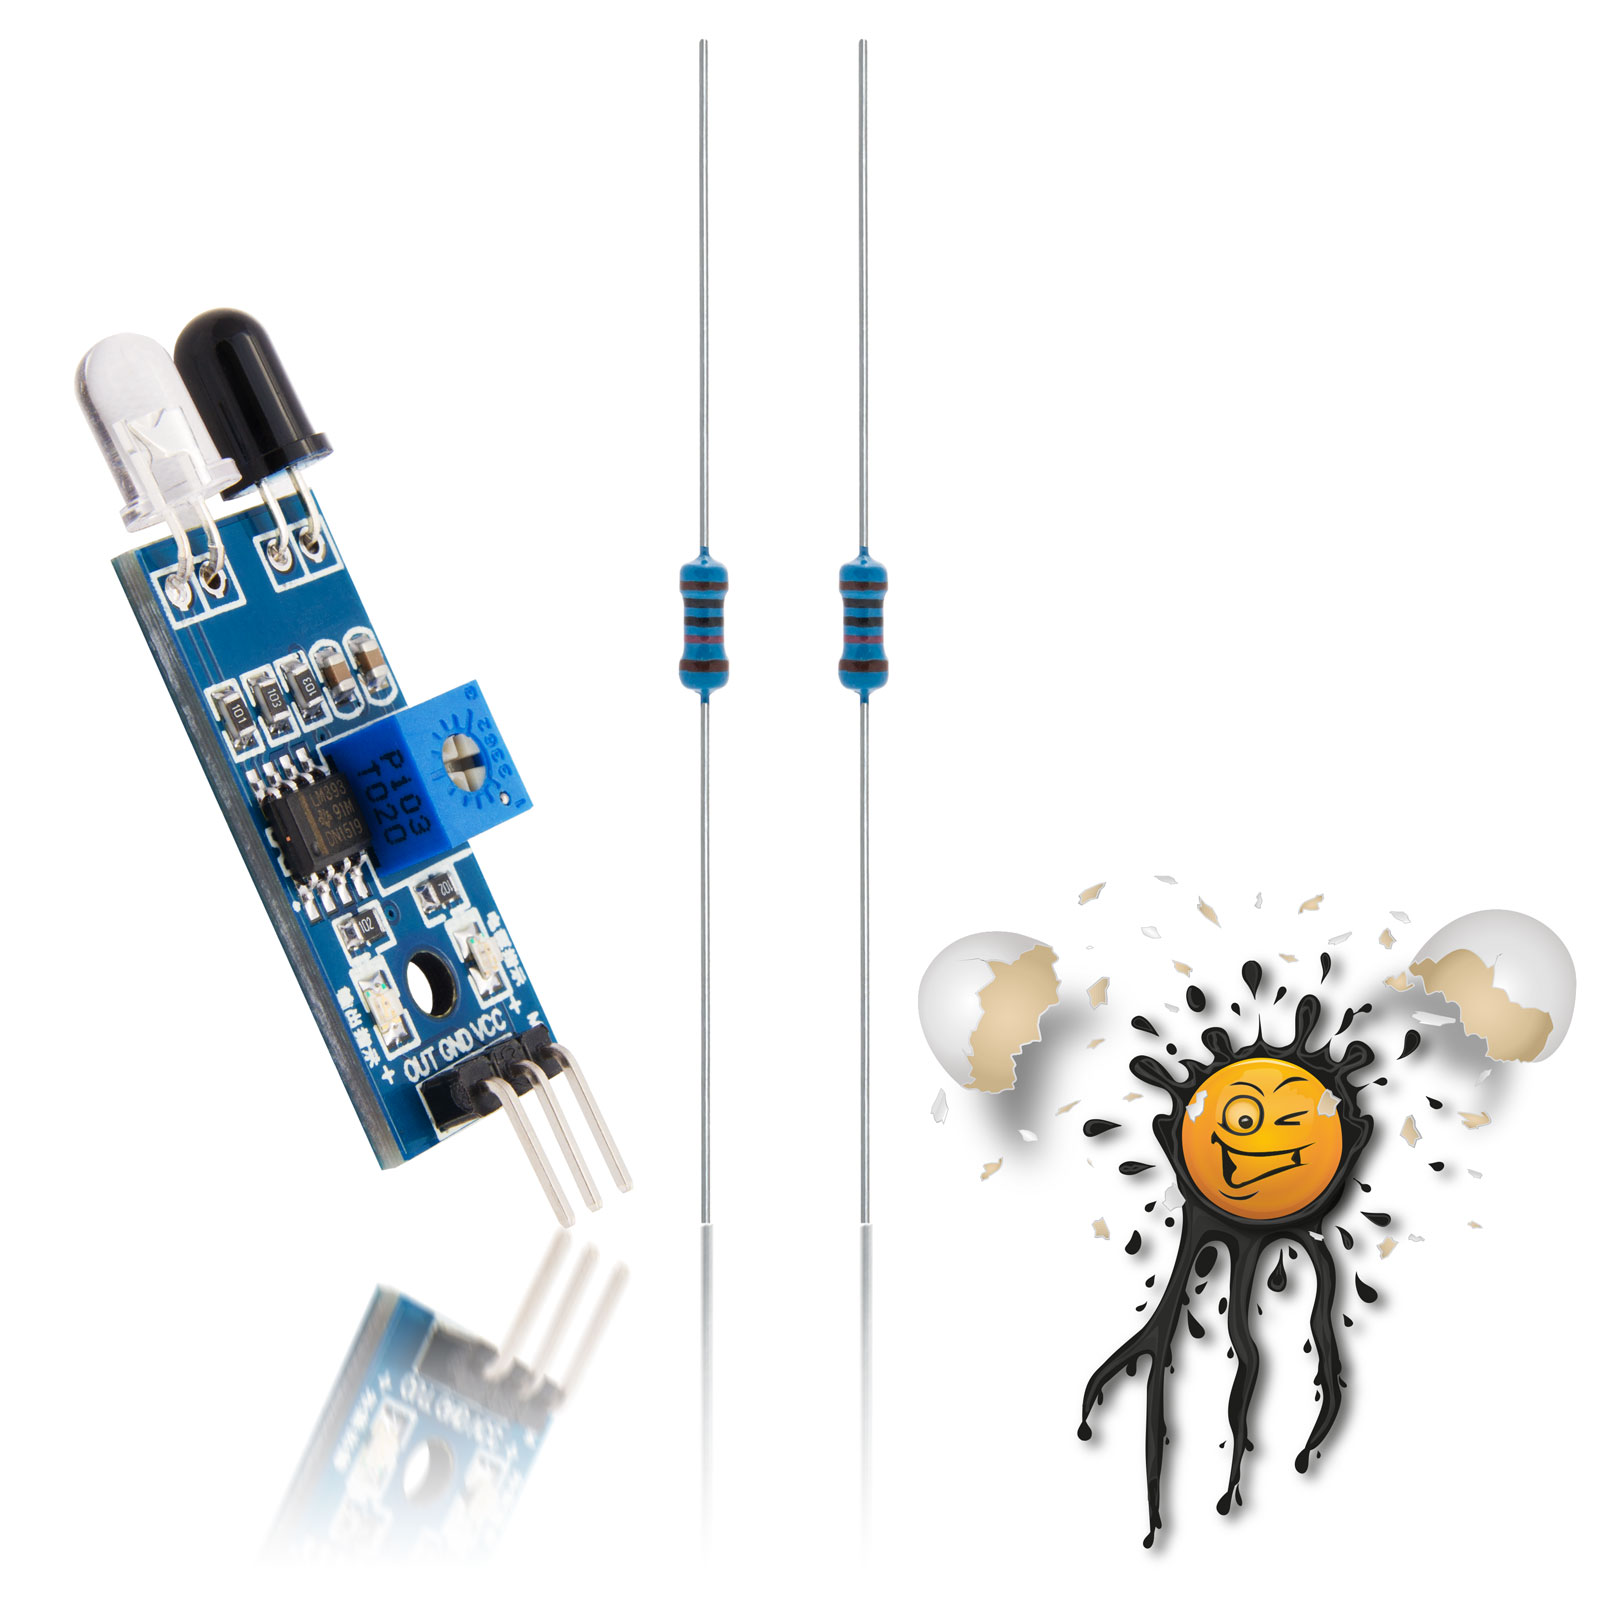 ESP IR Distanzsensor Kit